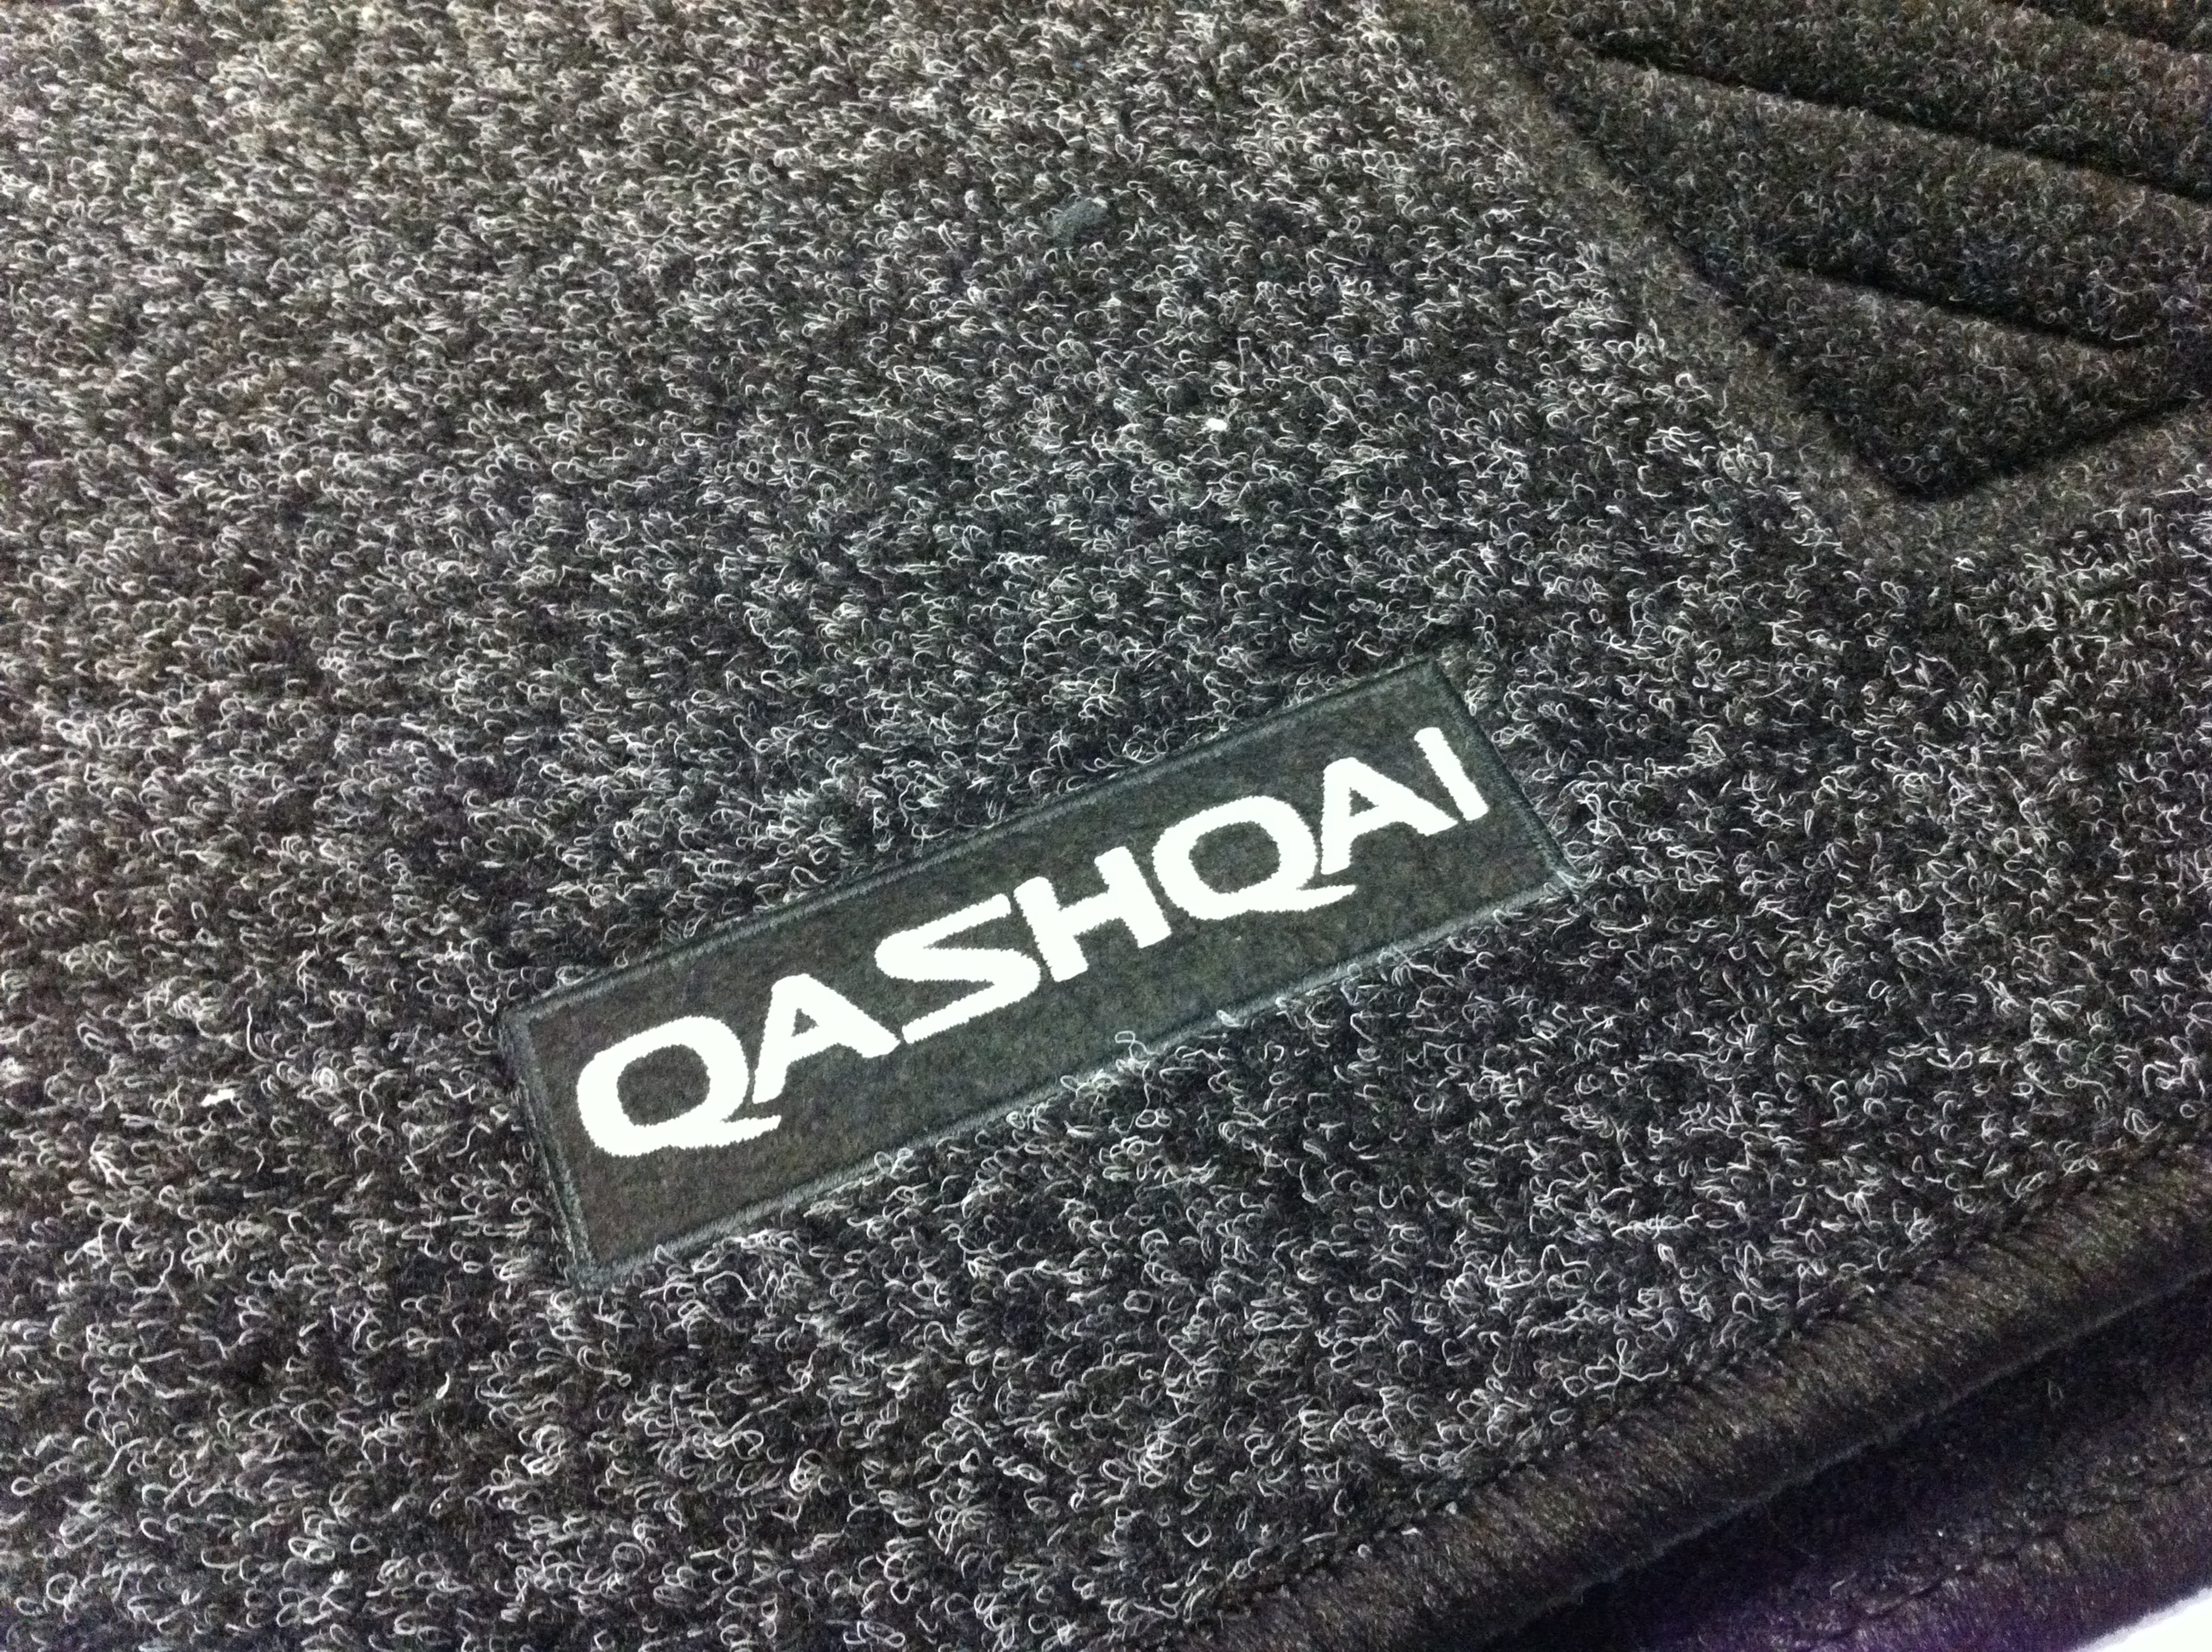 nissan qashqai genuine car floor mats tailored carpet front rear x4